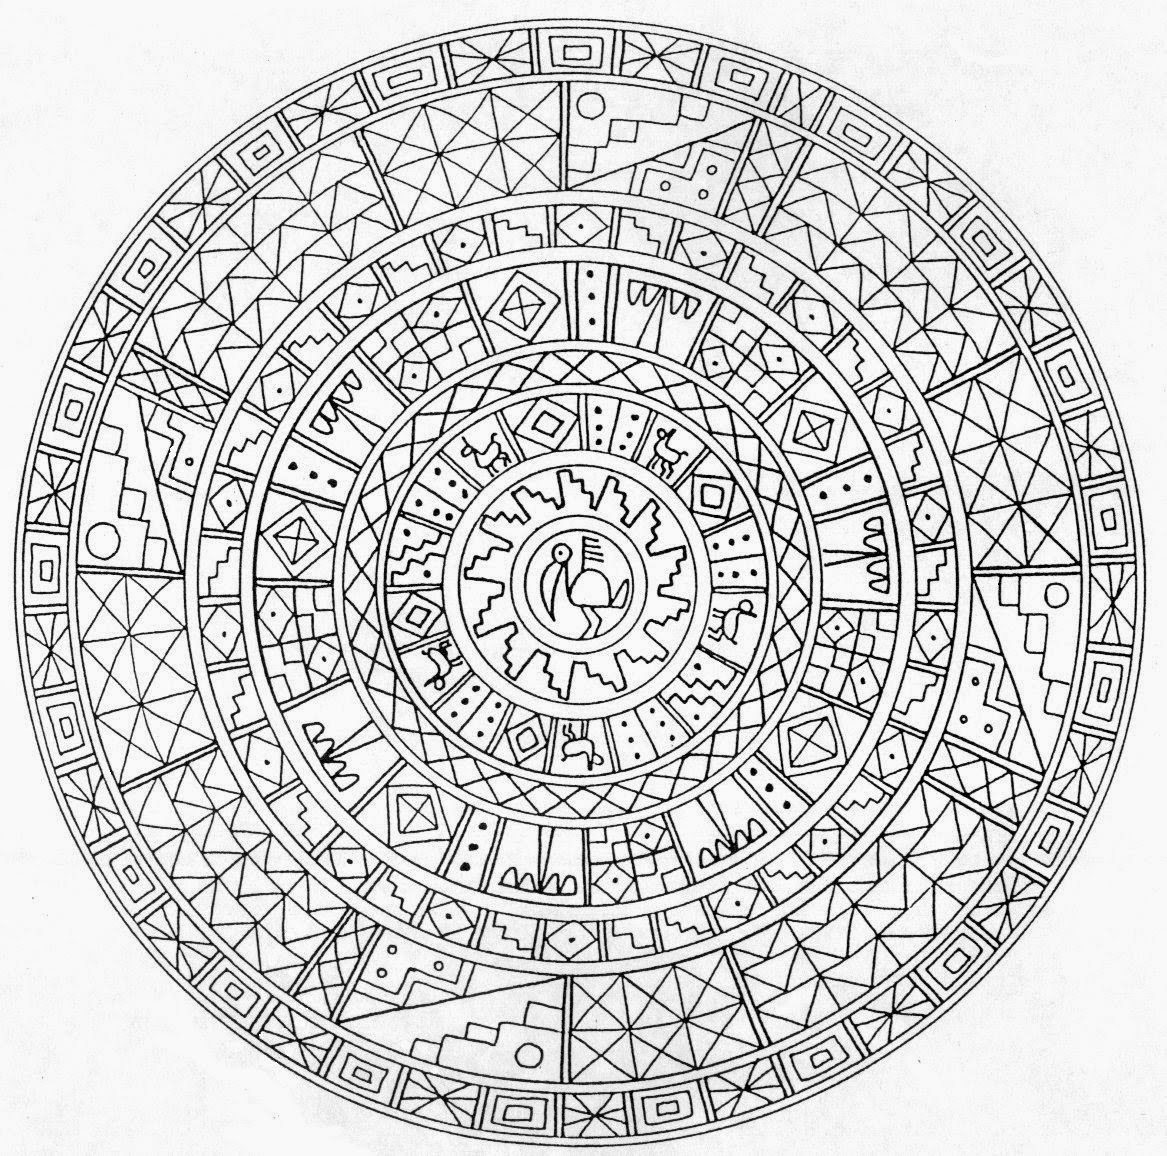 Printable Mandalas for AdultsDetailed Mandala Coloring Pages For Adults